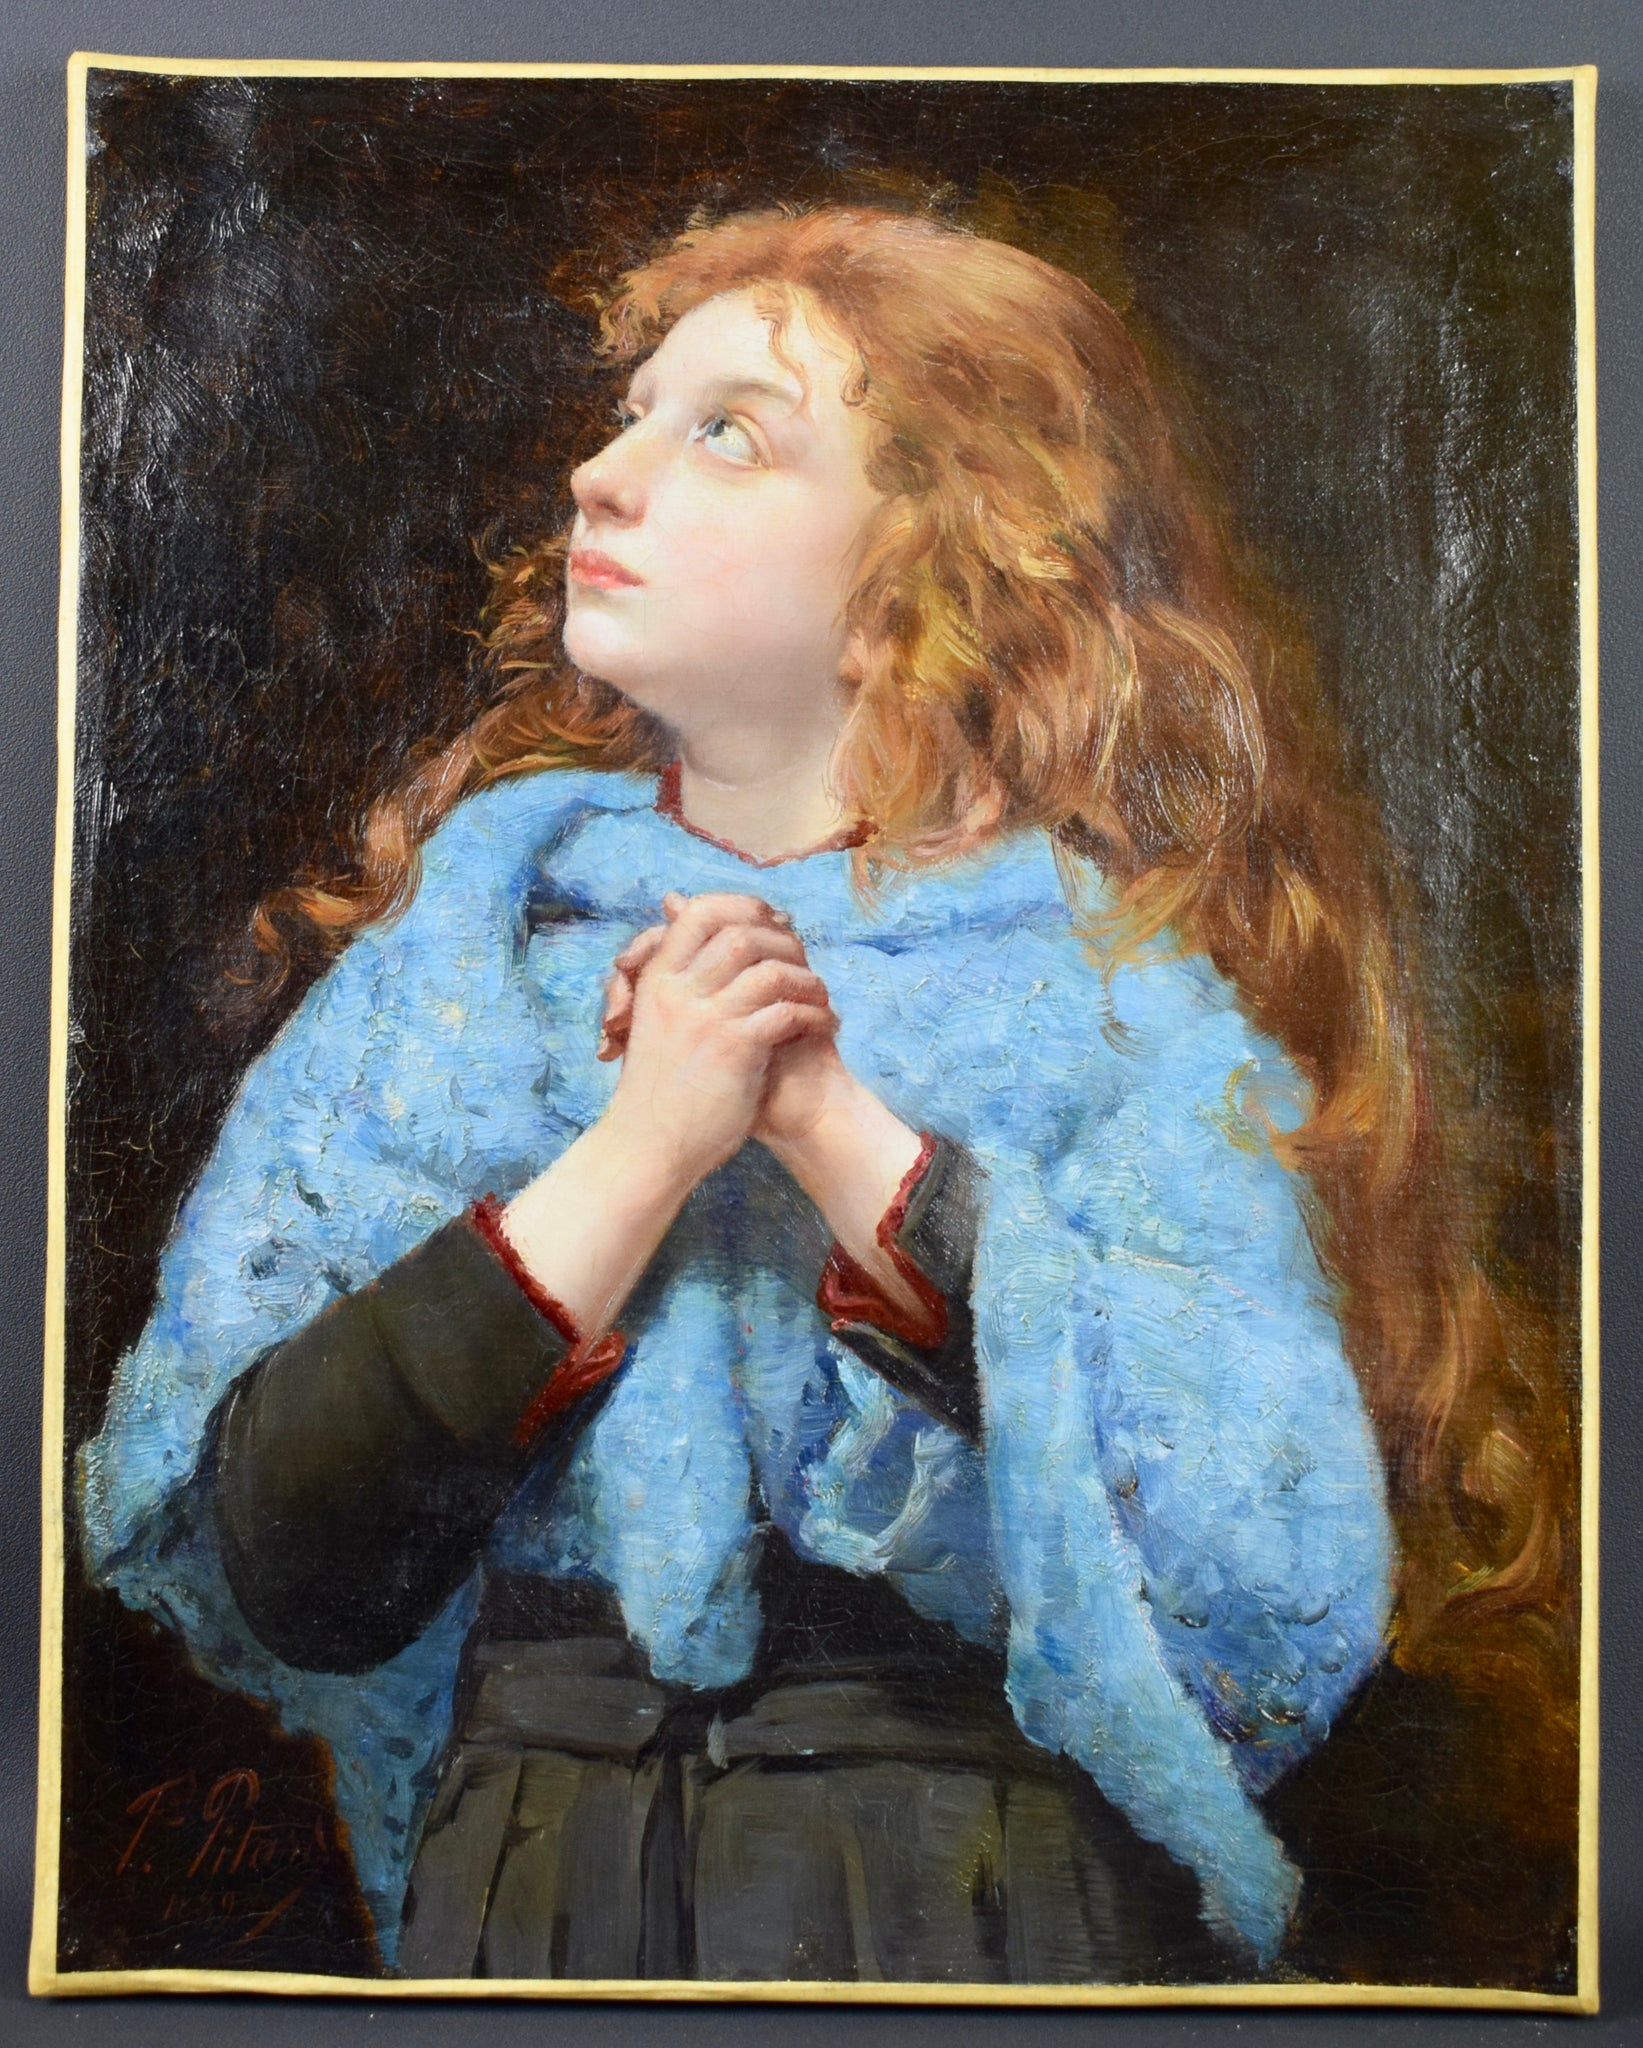 Young Girl Portrait by Pitard - Charmantiques